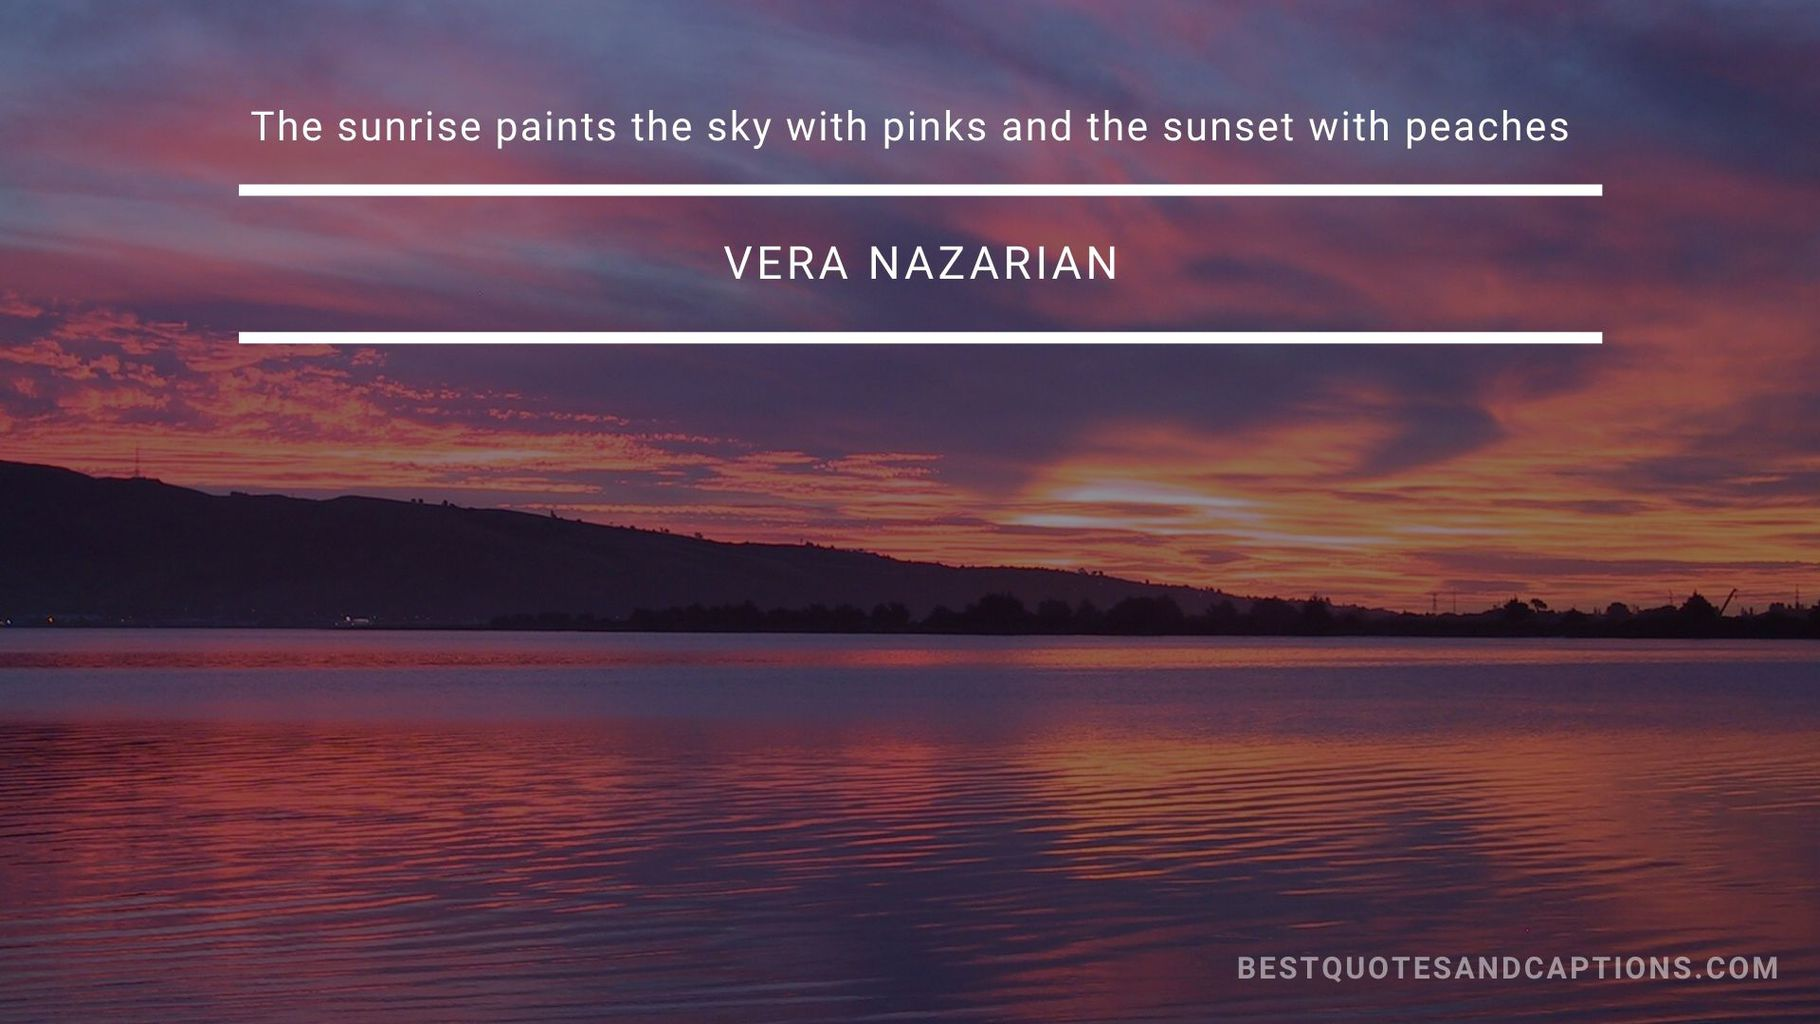 Sunset Quotes 300 Of The Best Quotes Sunset Captions For Instagram